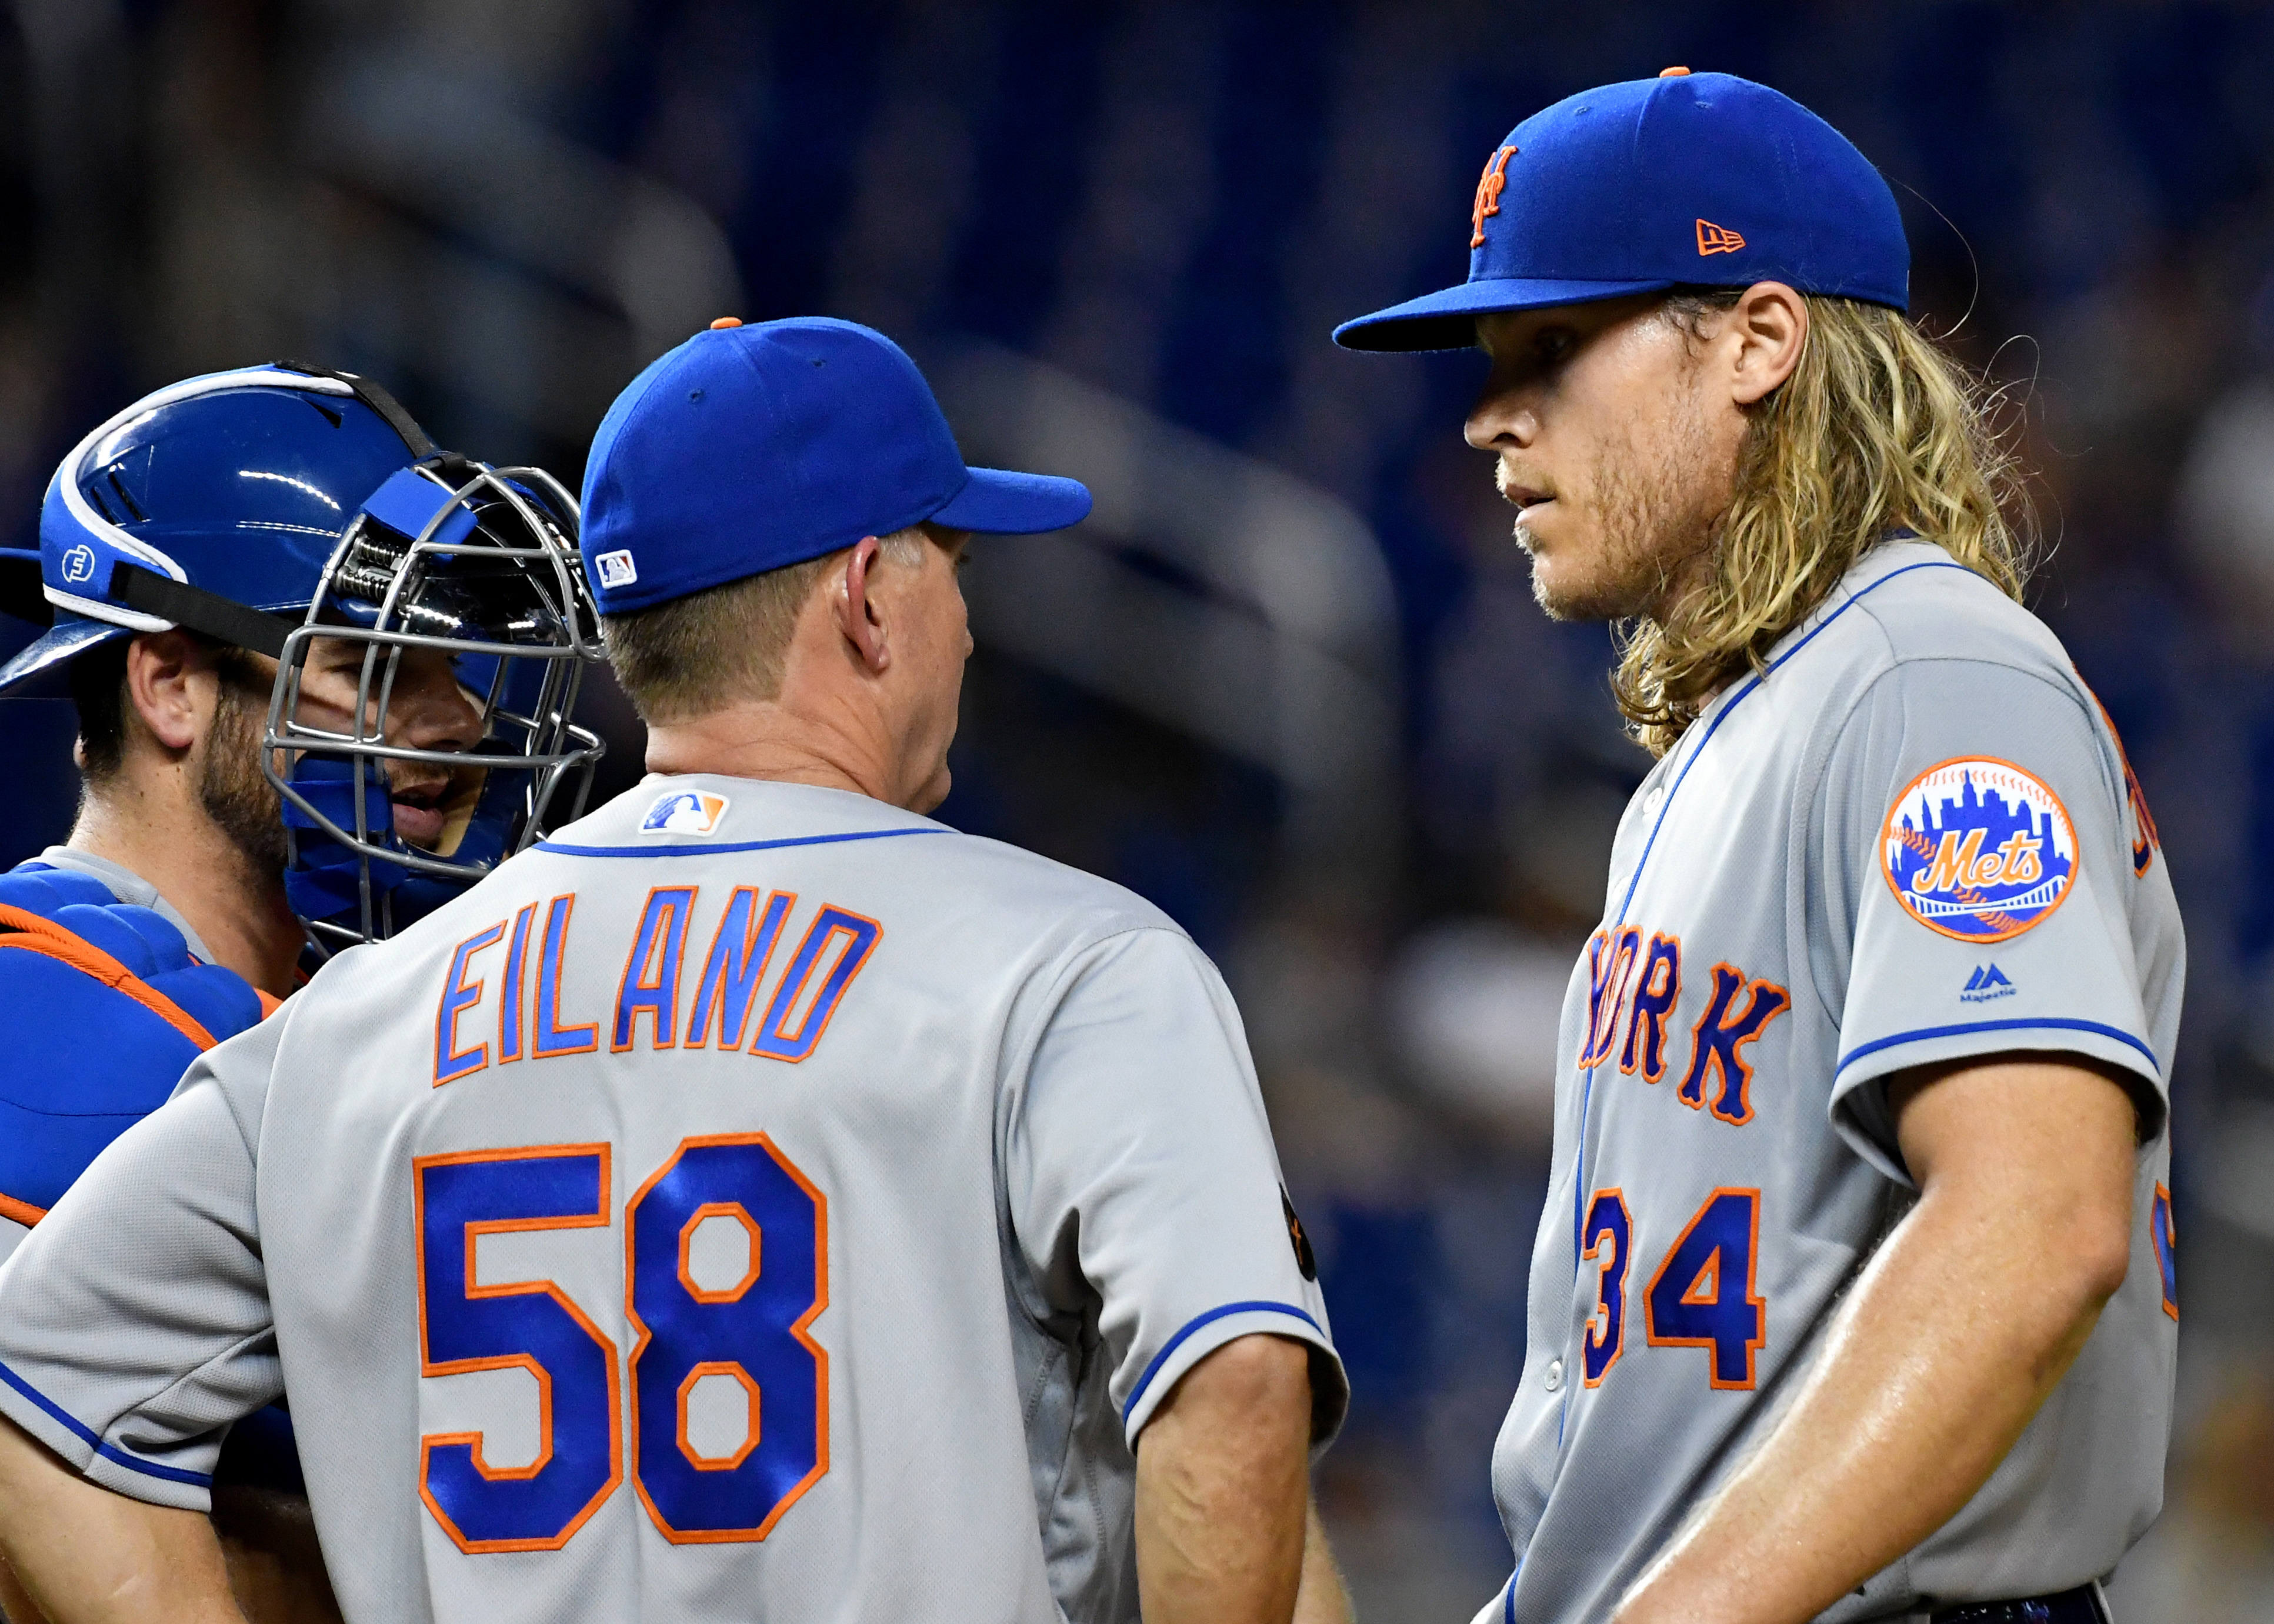 Dave Eiland firing is the latest sign of the New York Mets' culture of scapegoating